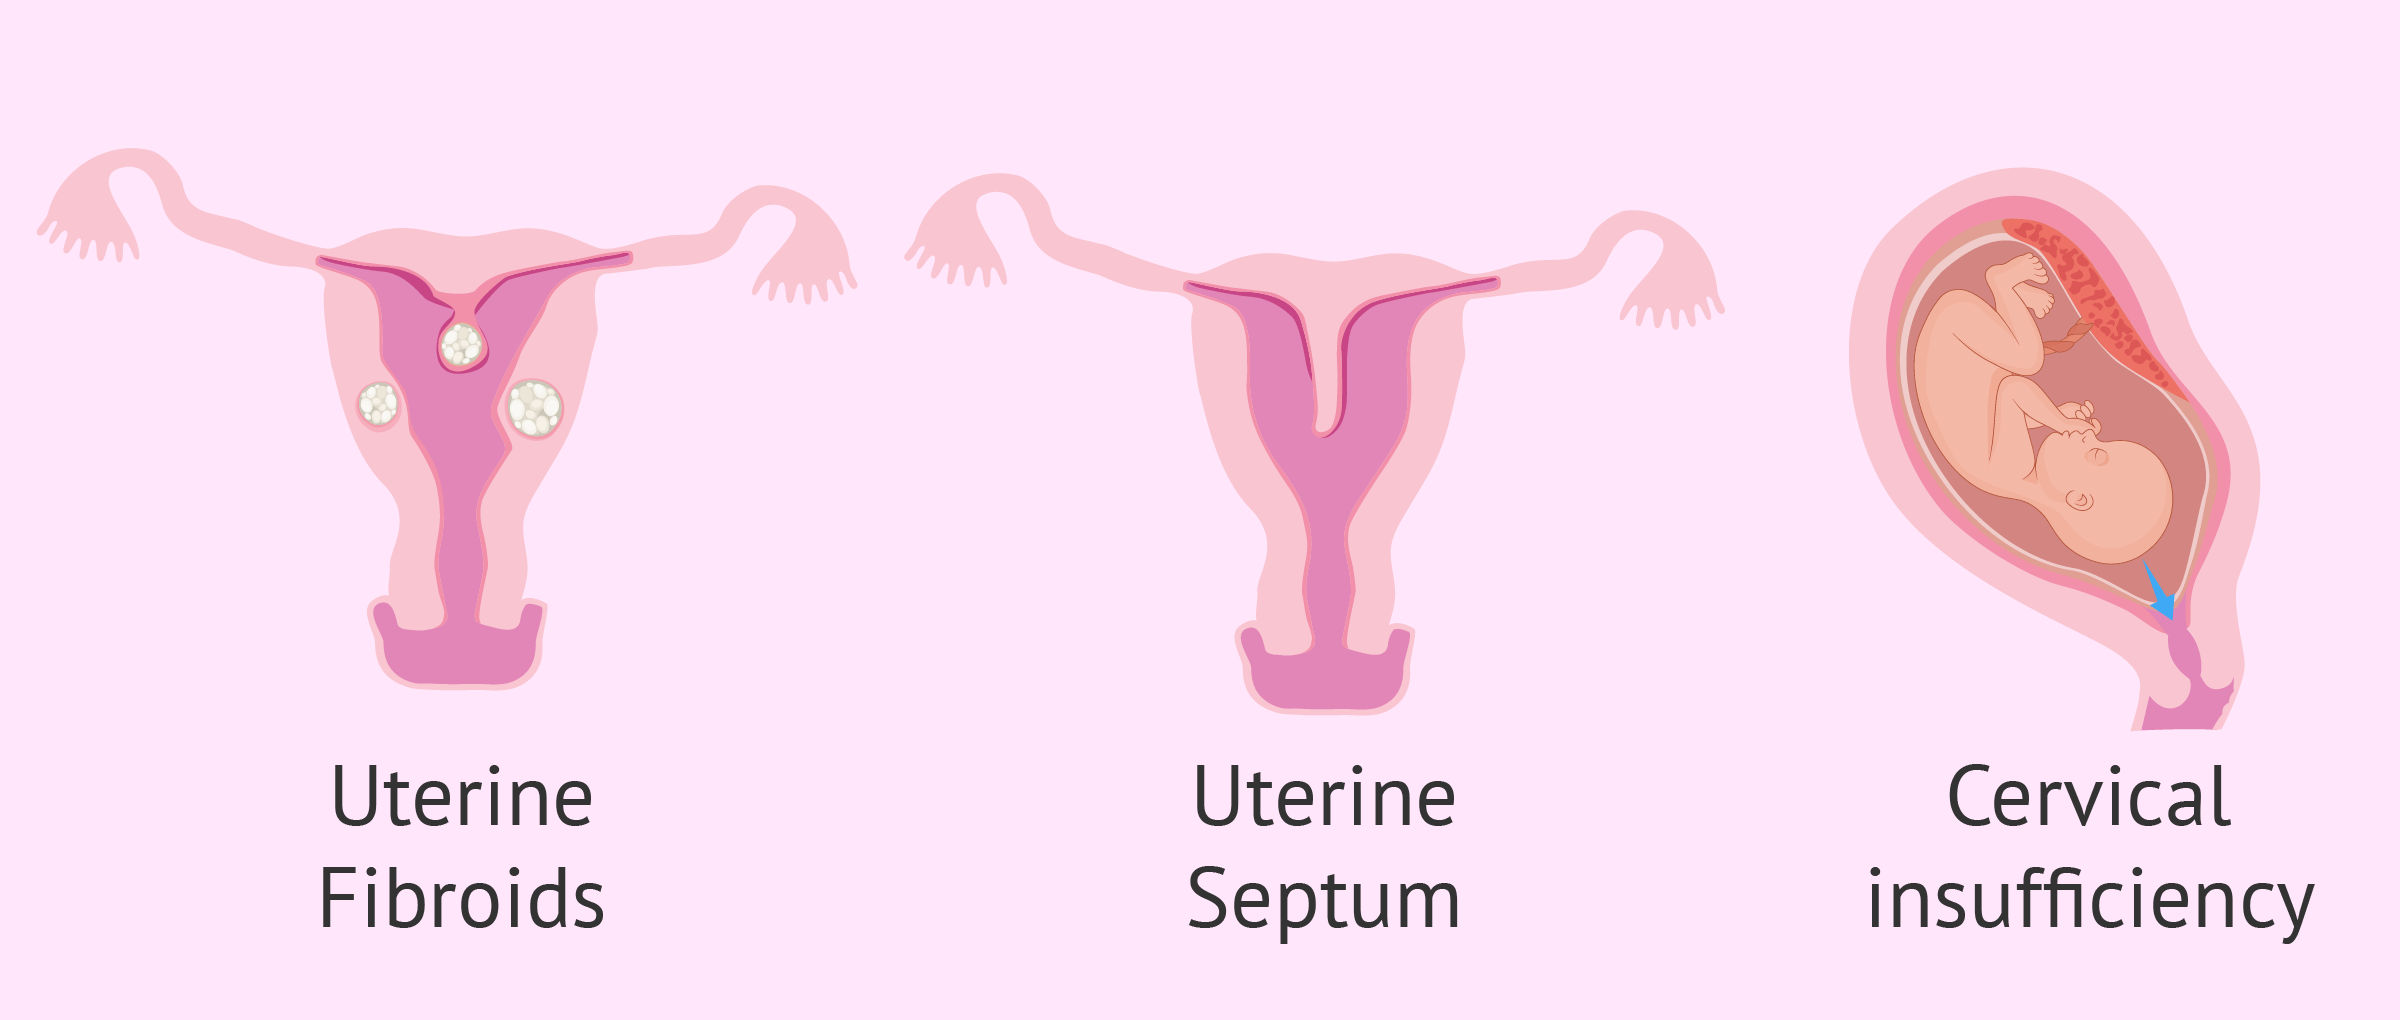 Uterine malformations that cause repeated miscarriages